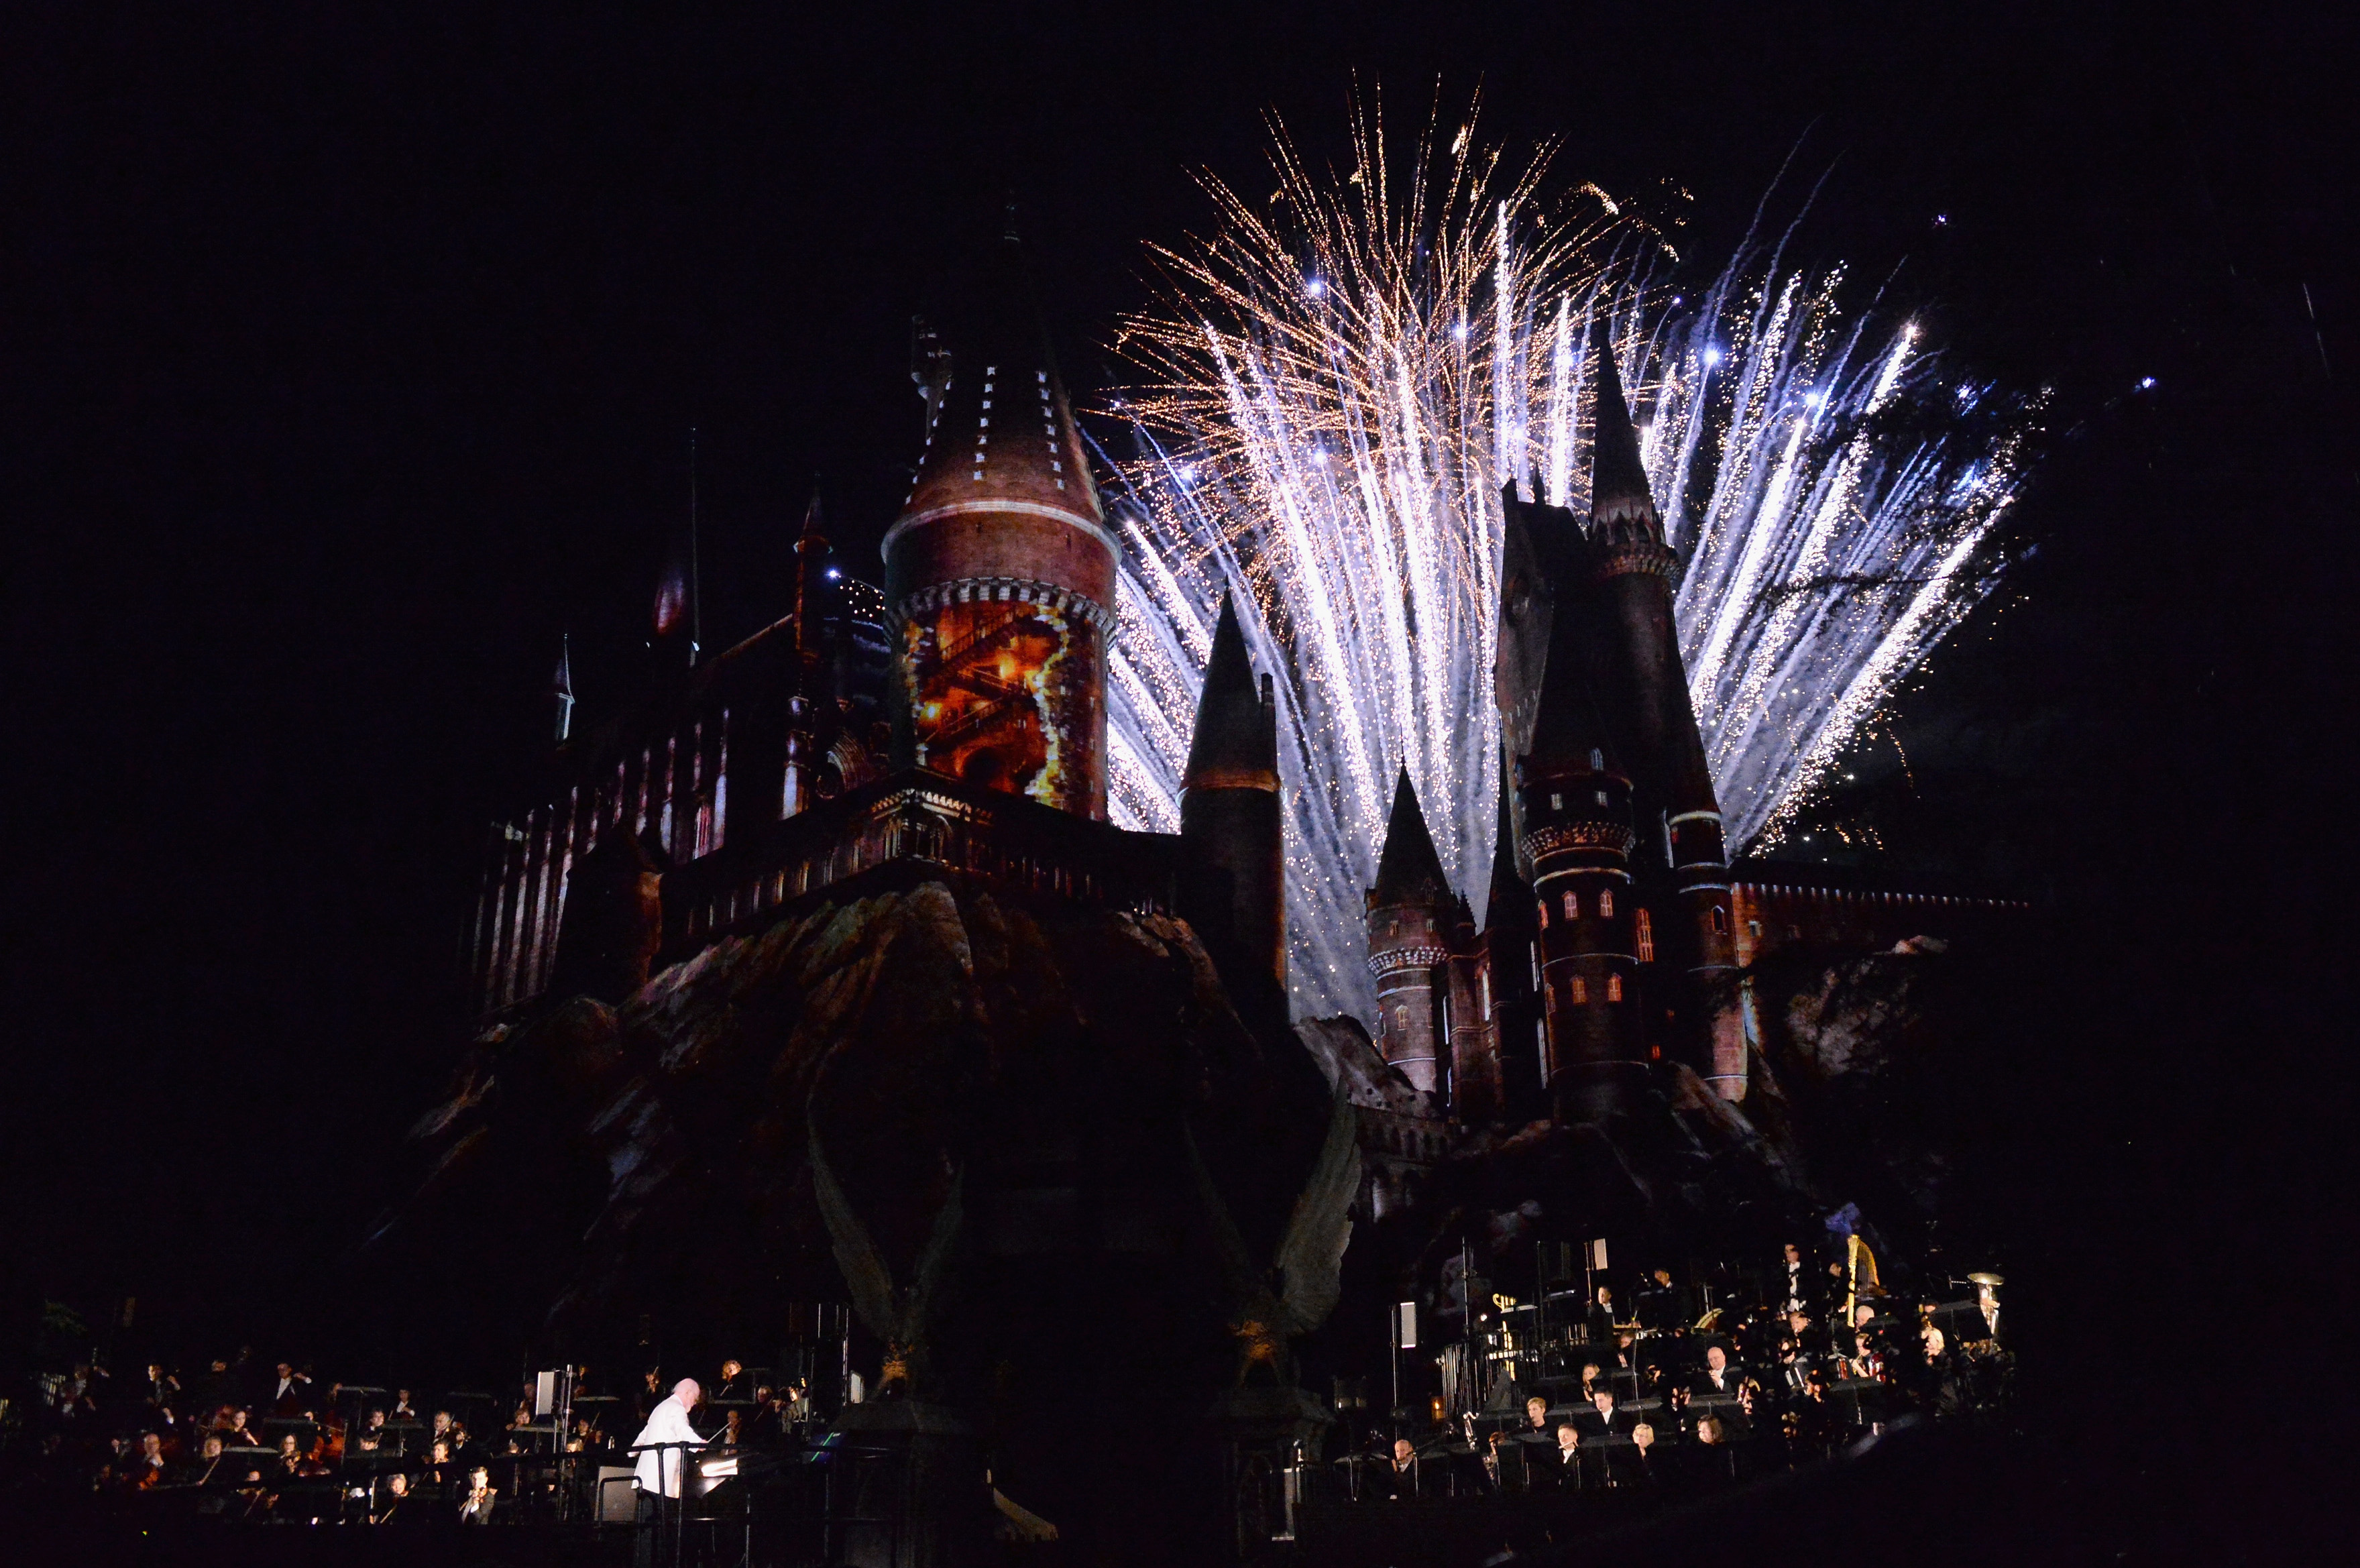 Differences Between The Wizarding World of Harry Potter in